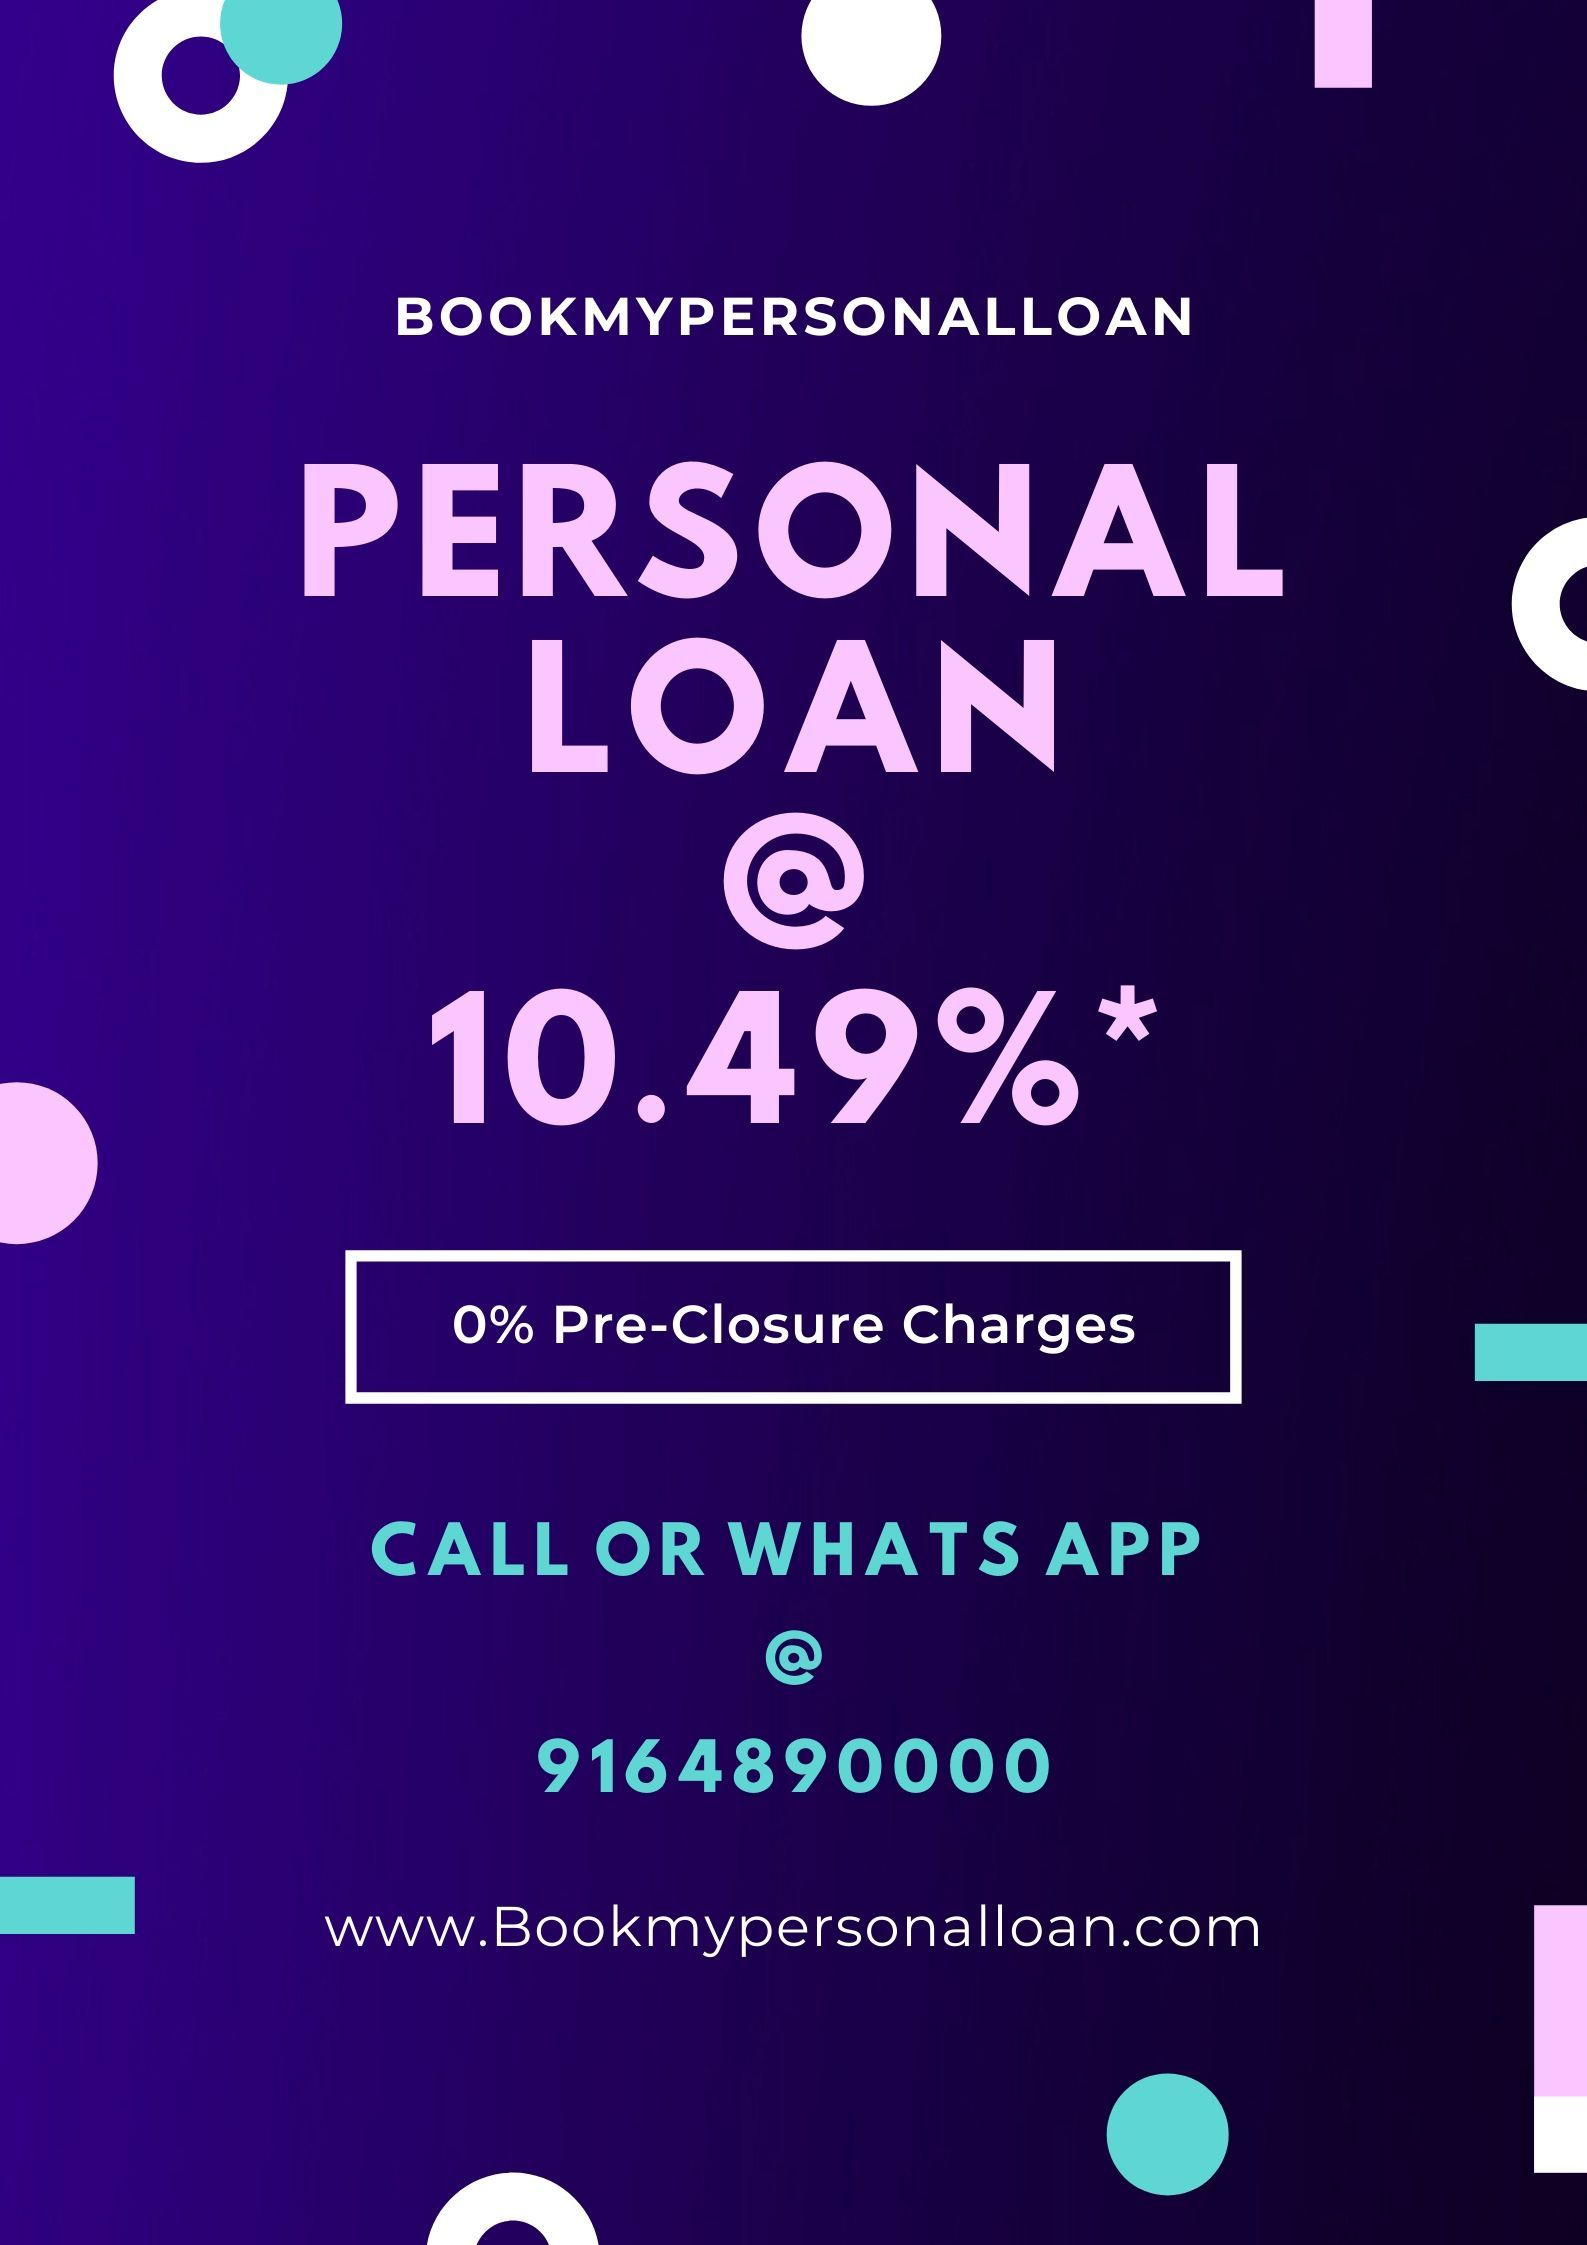 Personal Loan With Low Interest Rates In Bangalore Personal Loans Low Interest Personal Loans Loan